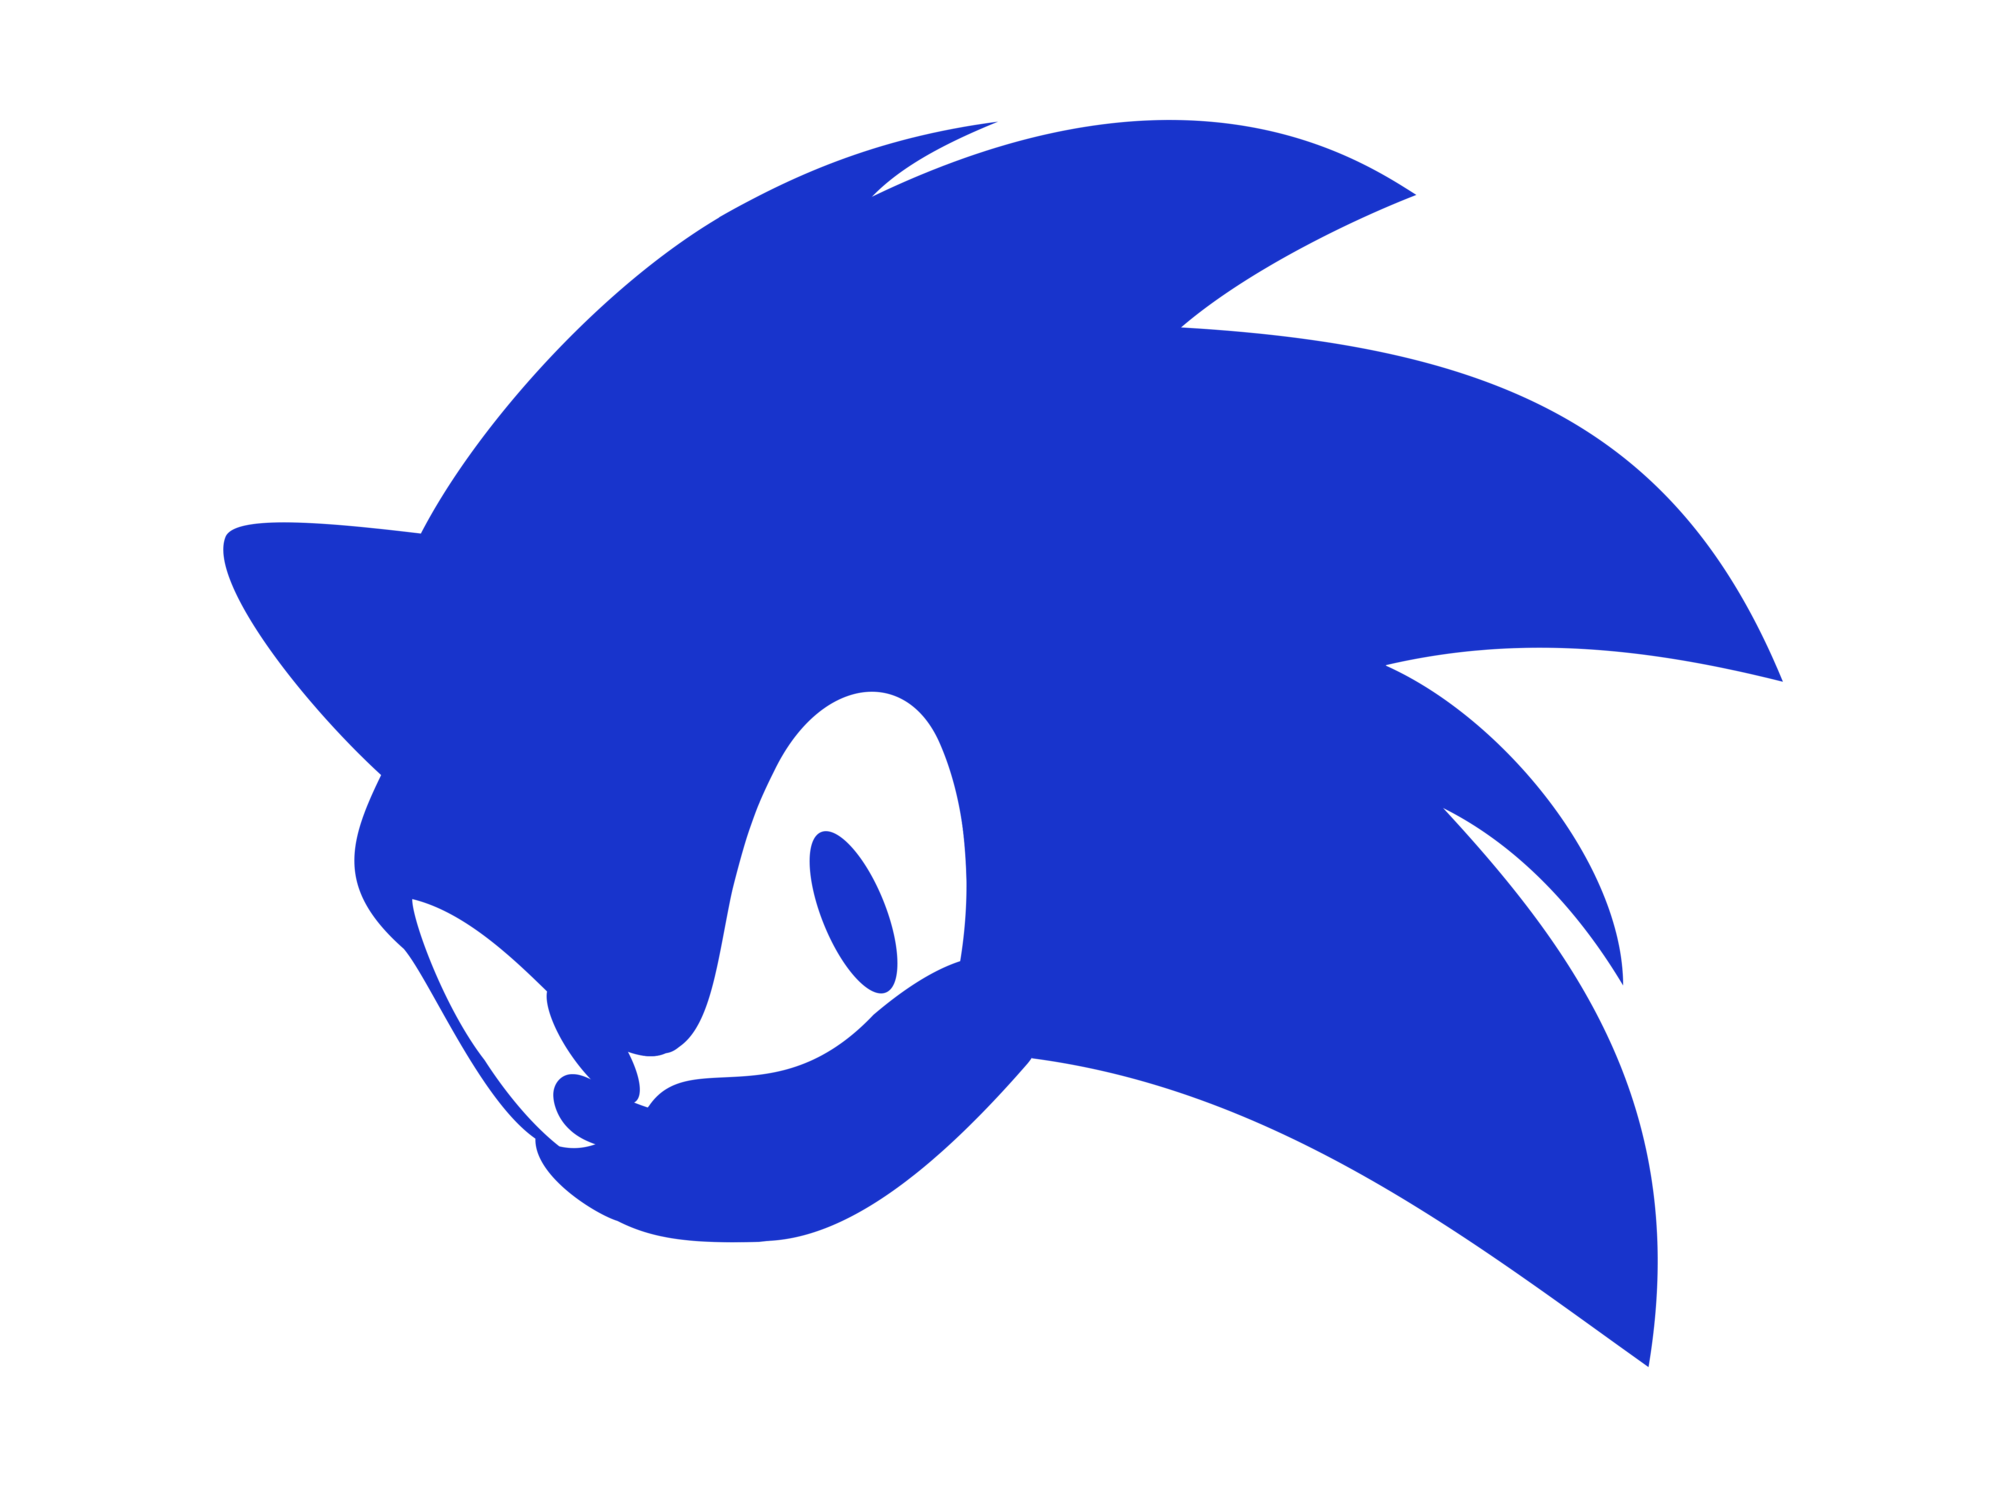 Sonic Logo And Symbol Meaning History Png